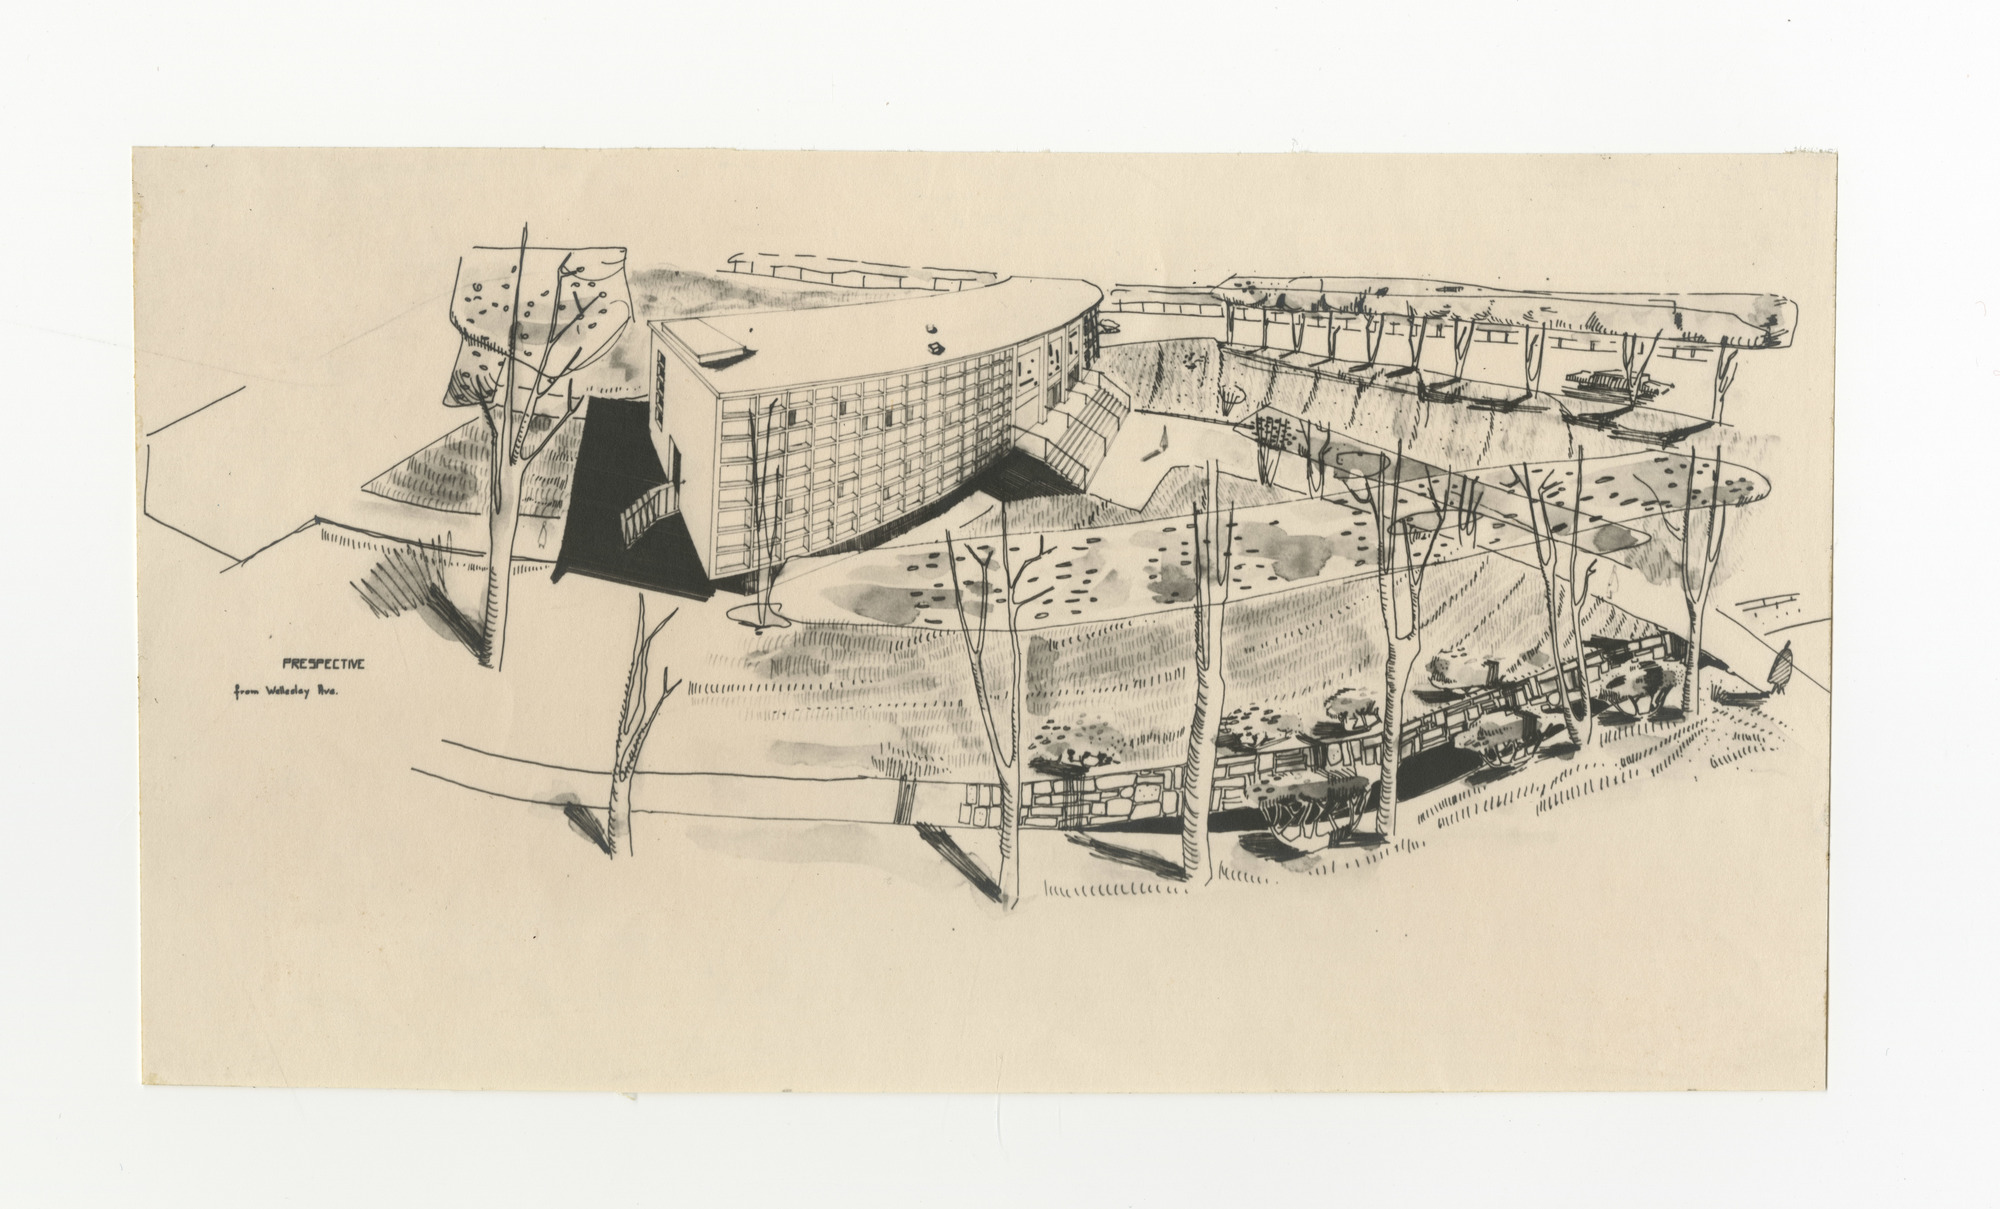 Ms1995-007_PiomelliRosaria_PerspectiveDrawing_nd_a.jpg